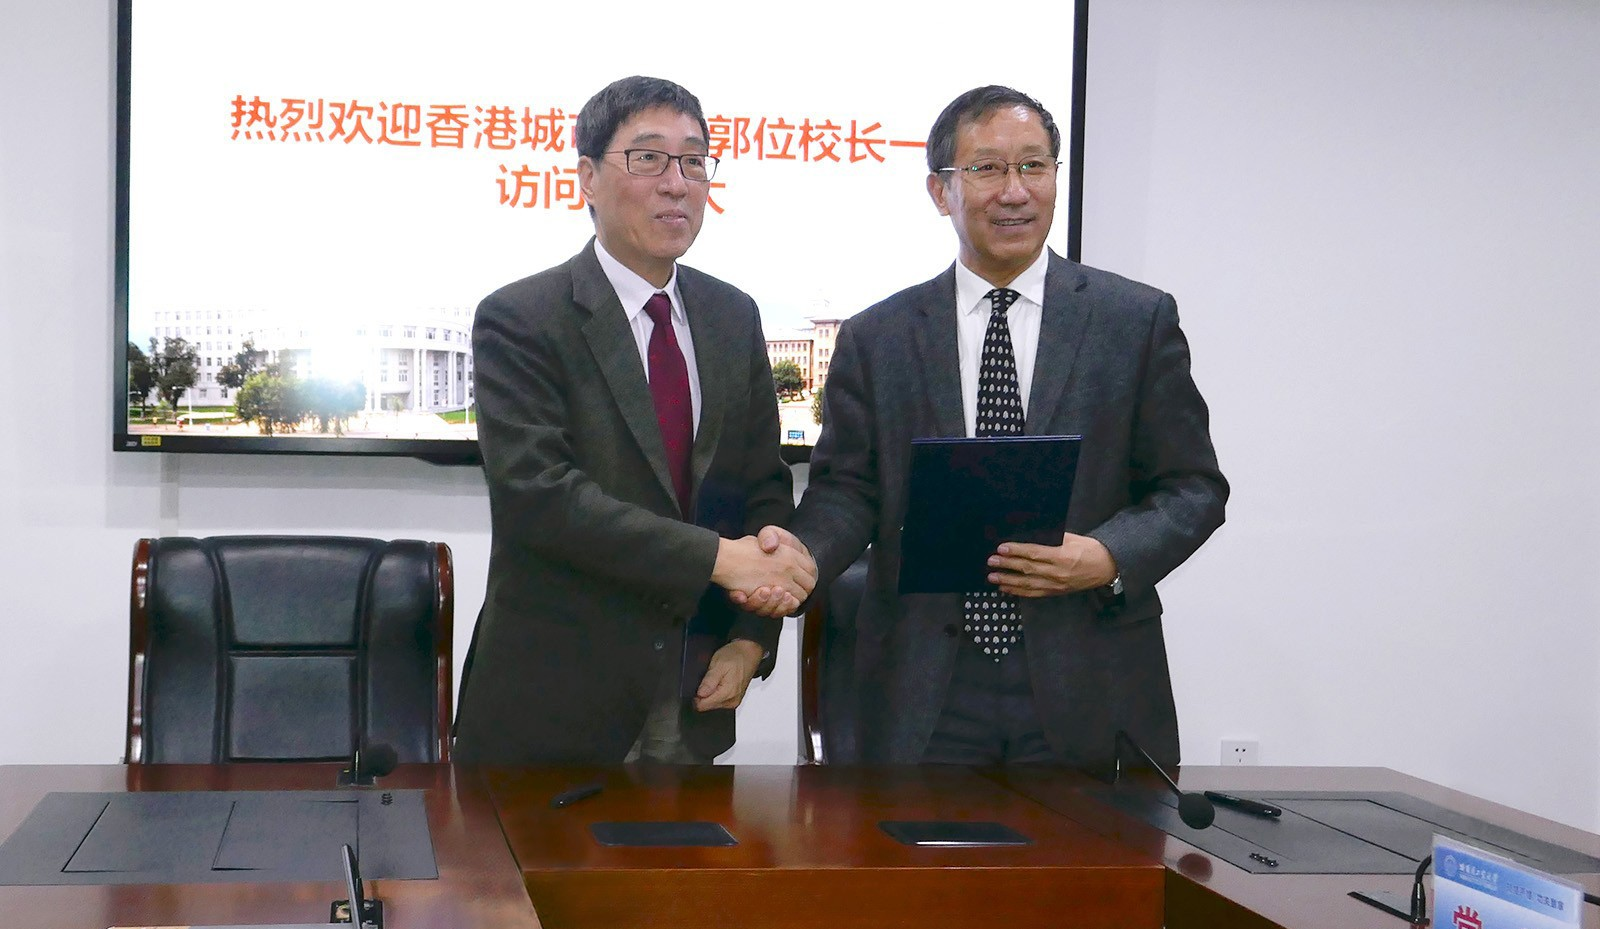 Professor Kuo (left) and Professor Zhou sign the MOU.